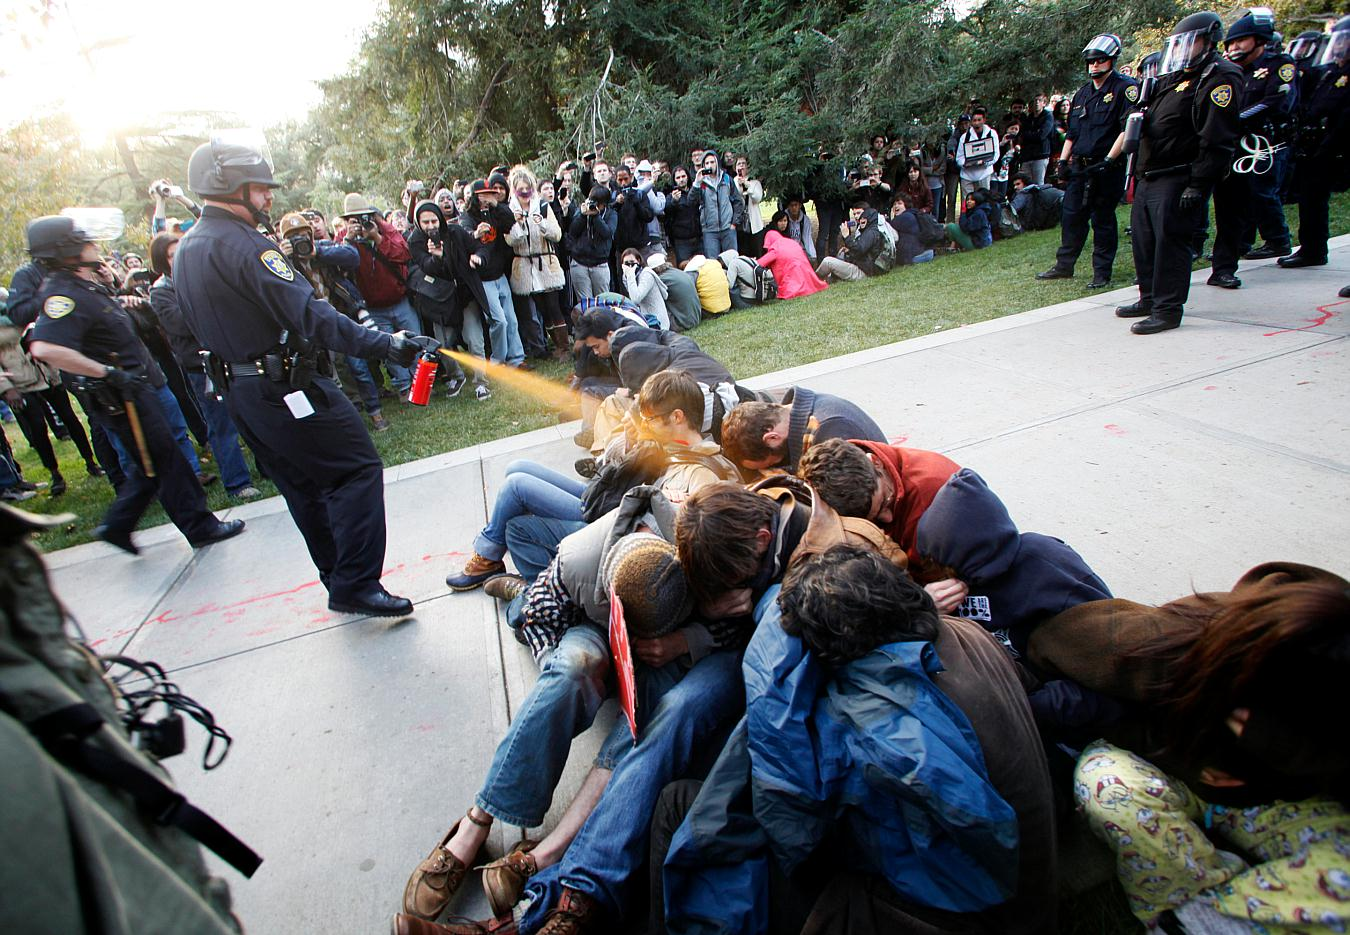 In this Friday, Nov. 18, 2011, photo University of California, Davis Police Lt. John Pike uses pepper spray to move Occupy UC Davis protesters while blocking their exit from the school